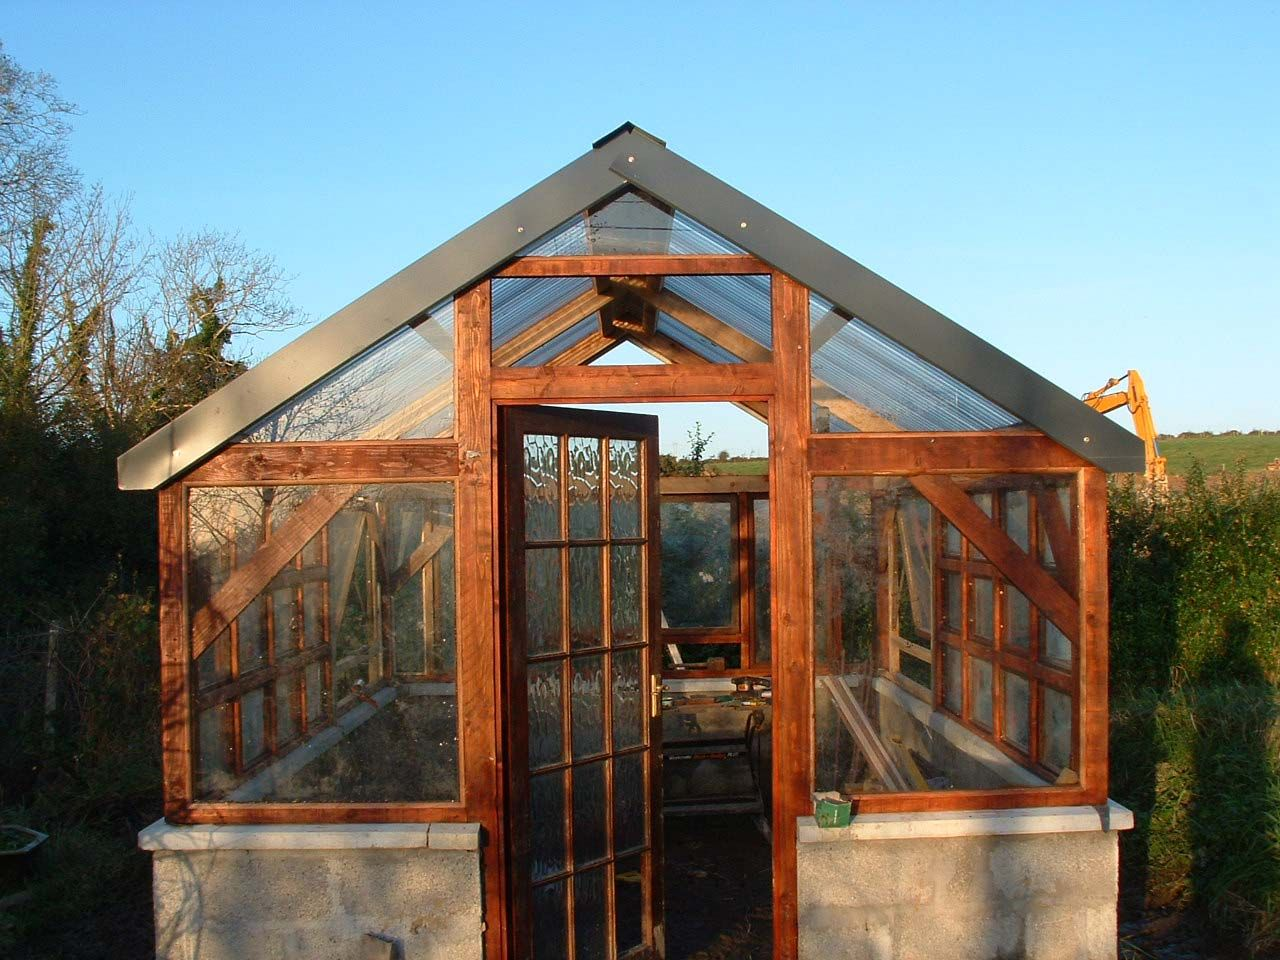 Timber Frame Greenhouse W Recycled Windows Recycled